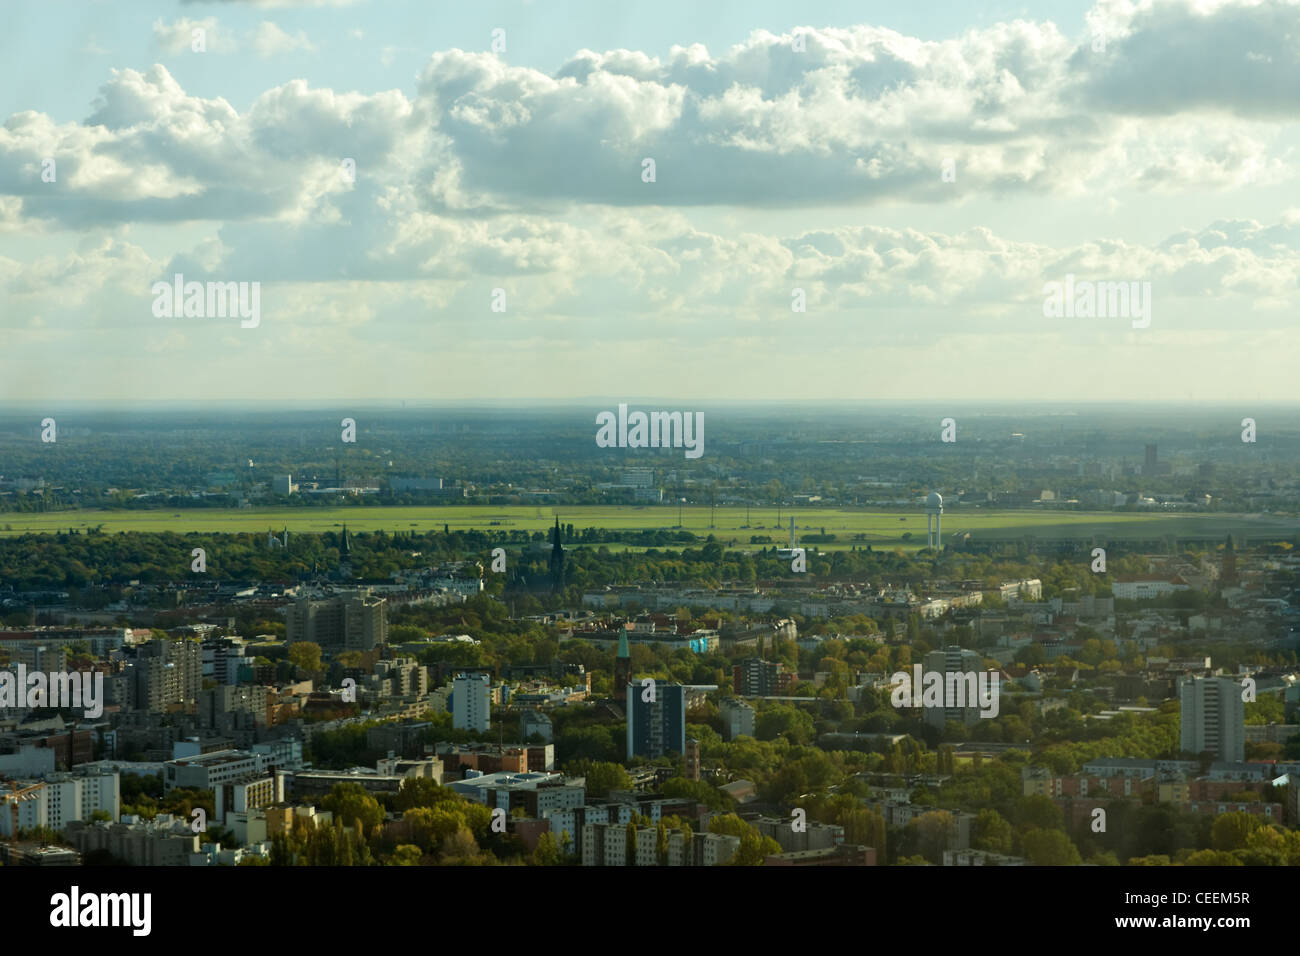 A view of the green city of Berlin, Germany and the old airport Tempelhof, the first airport that operated within - Stock Image